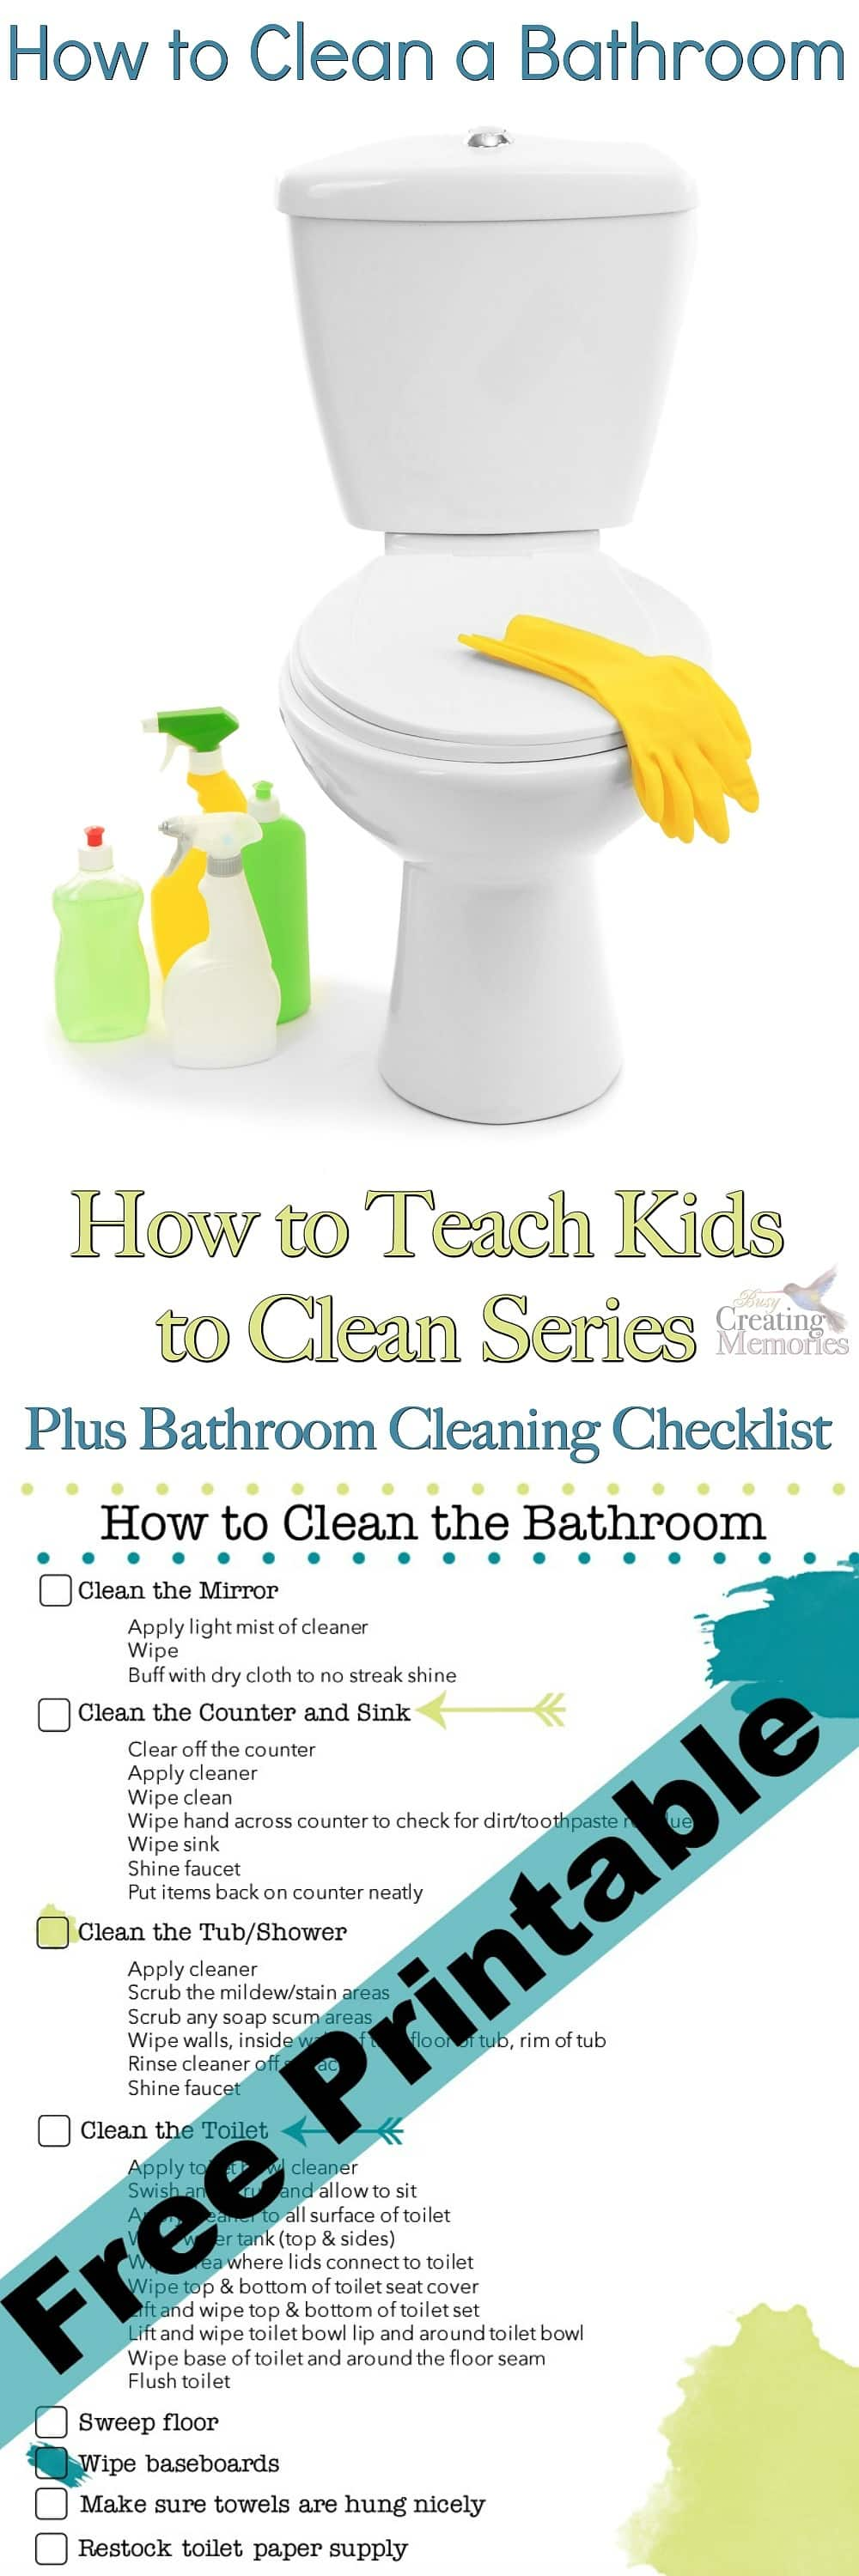 Don't live with a half clean bathroom again! Use this Bathroom Cleaning Checklist to help teach your kids how to clean a bathroom correctly the first time!